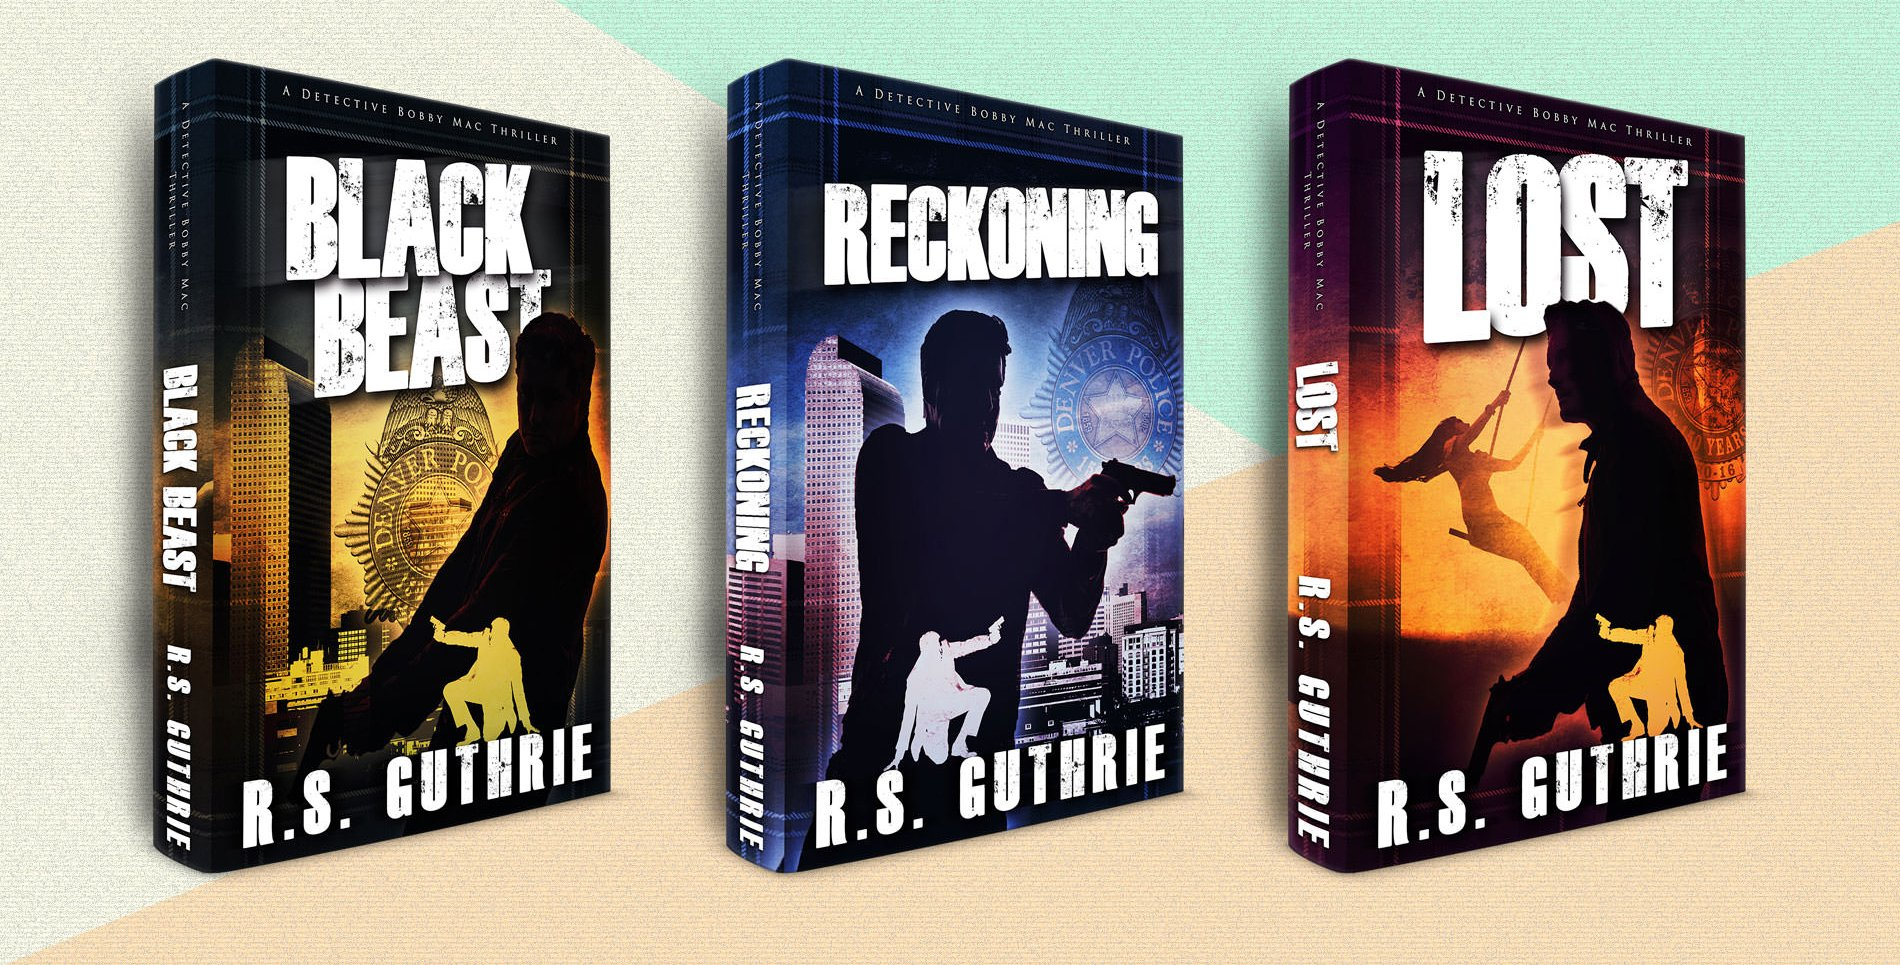 Three books in the Black Beast series after redesign